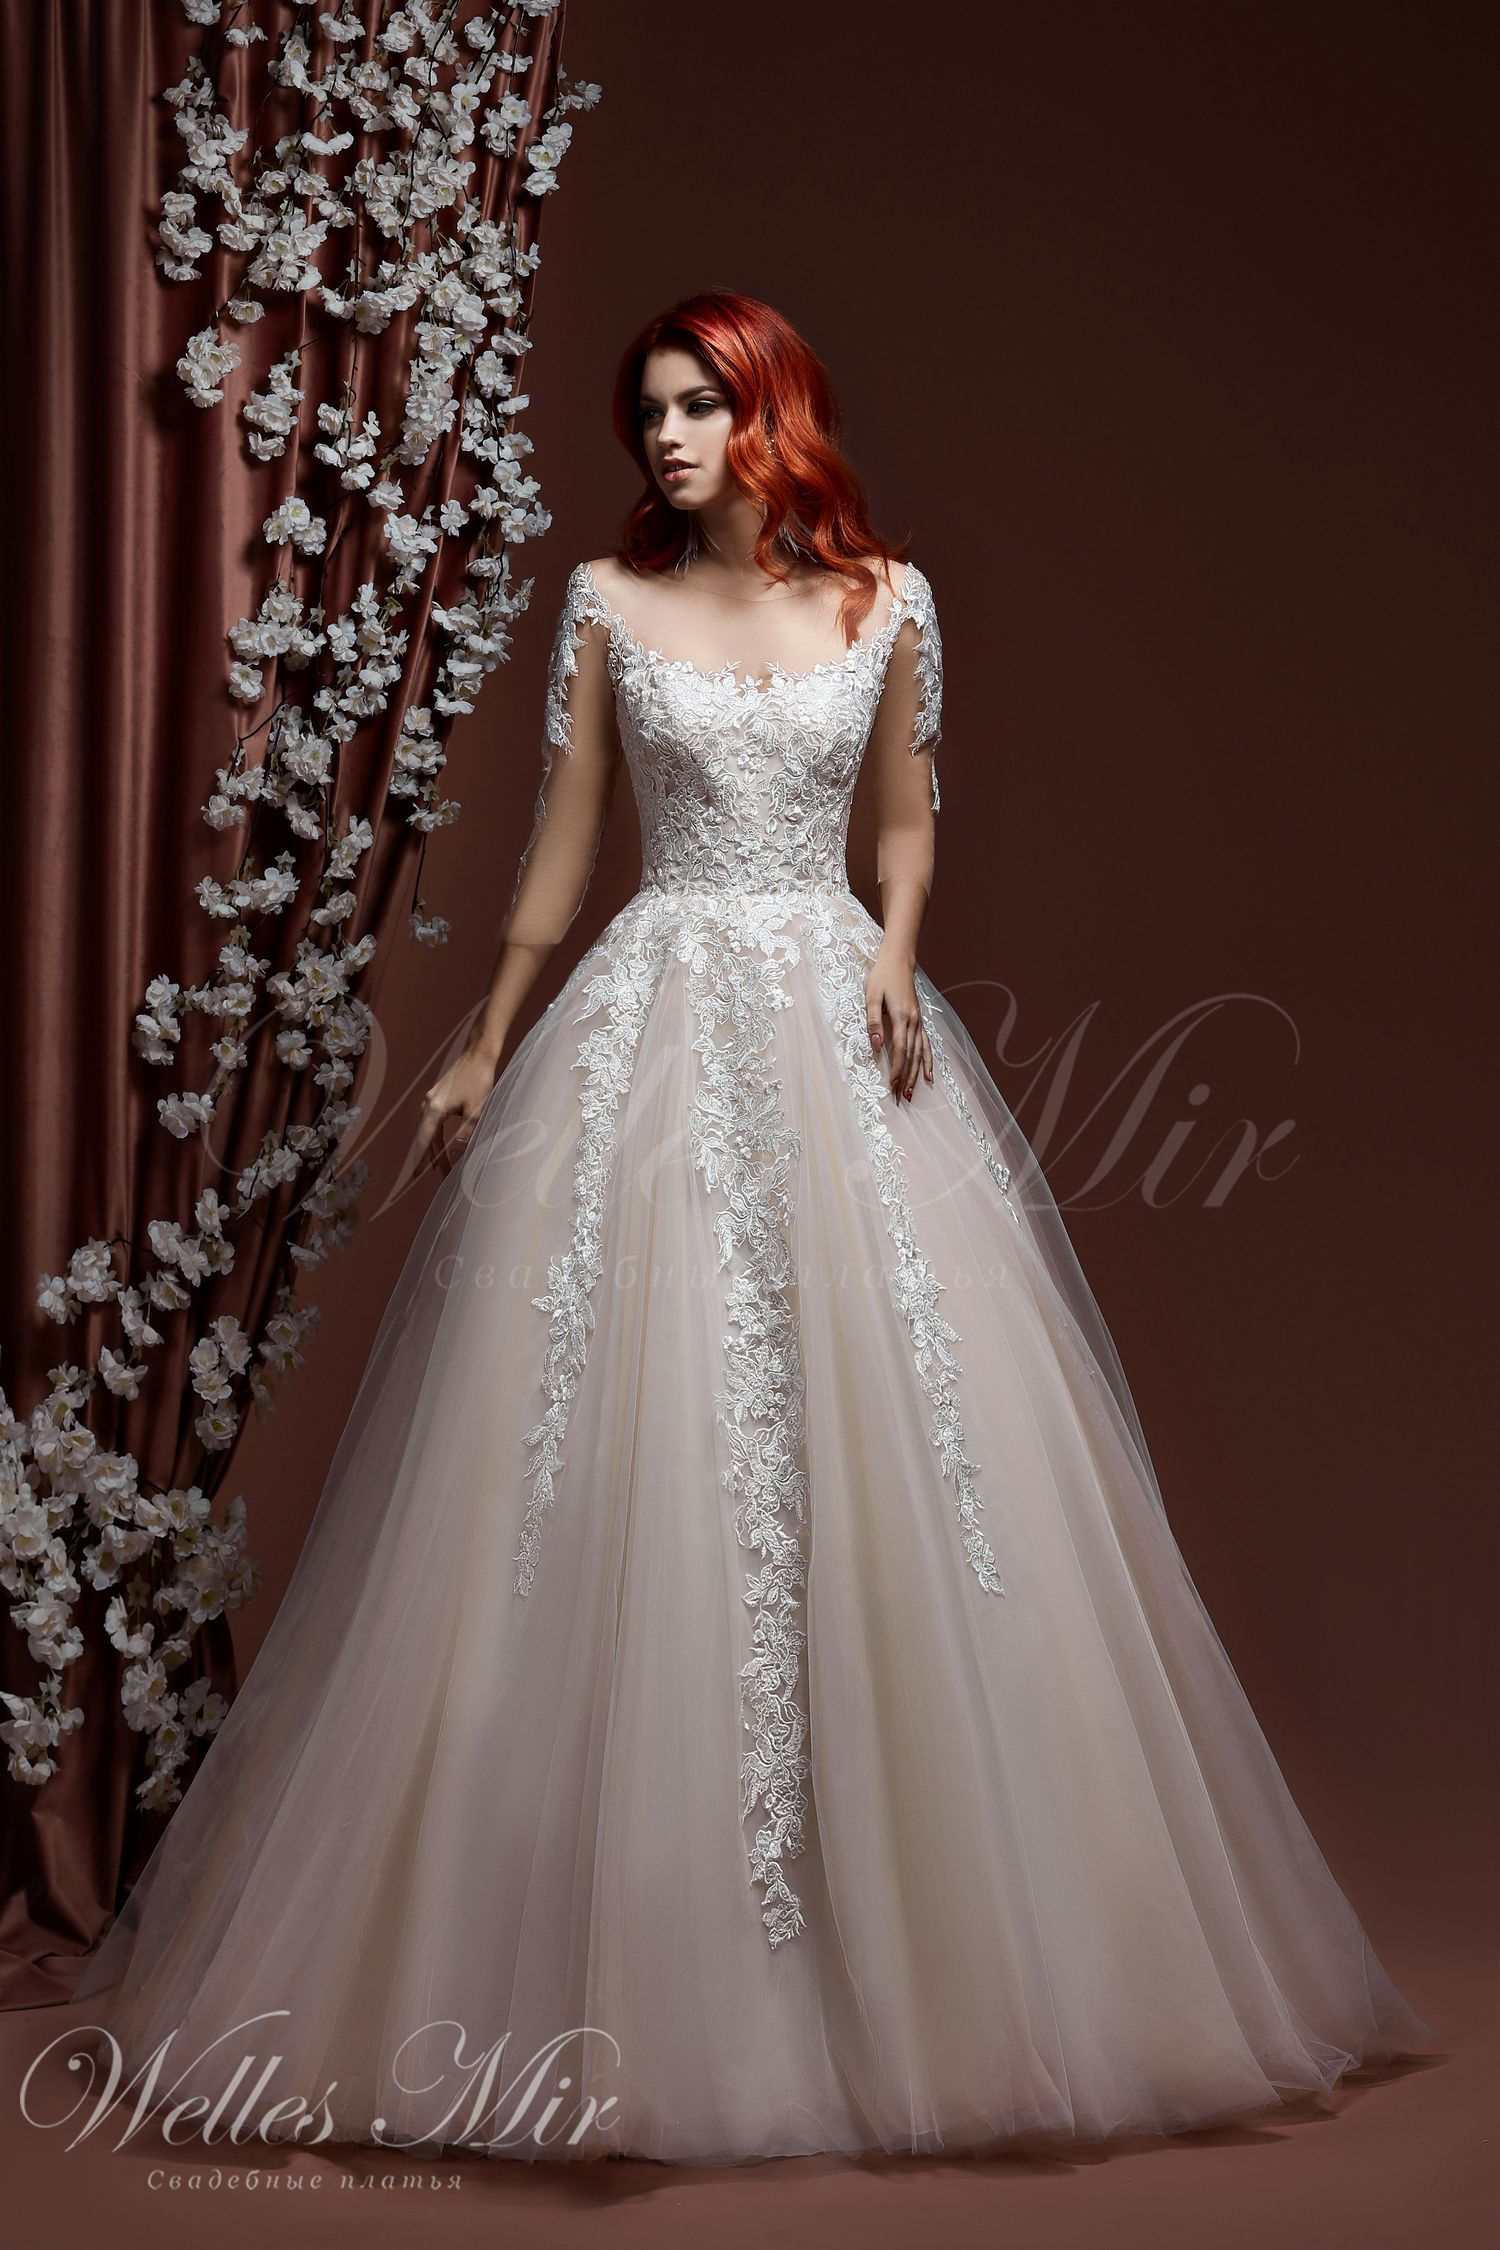 Wedding dresses 535